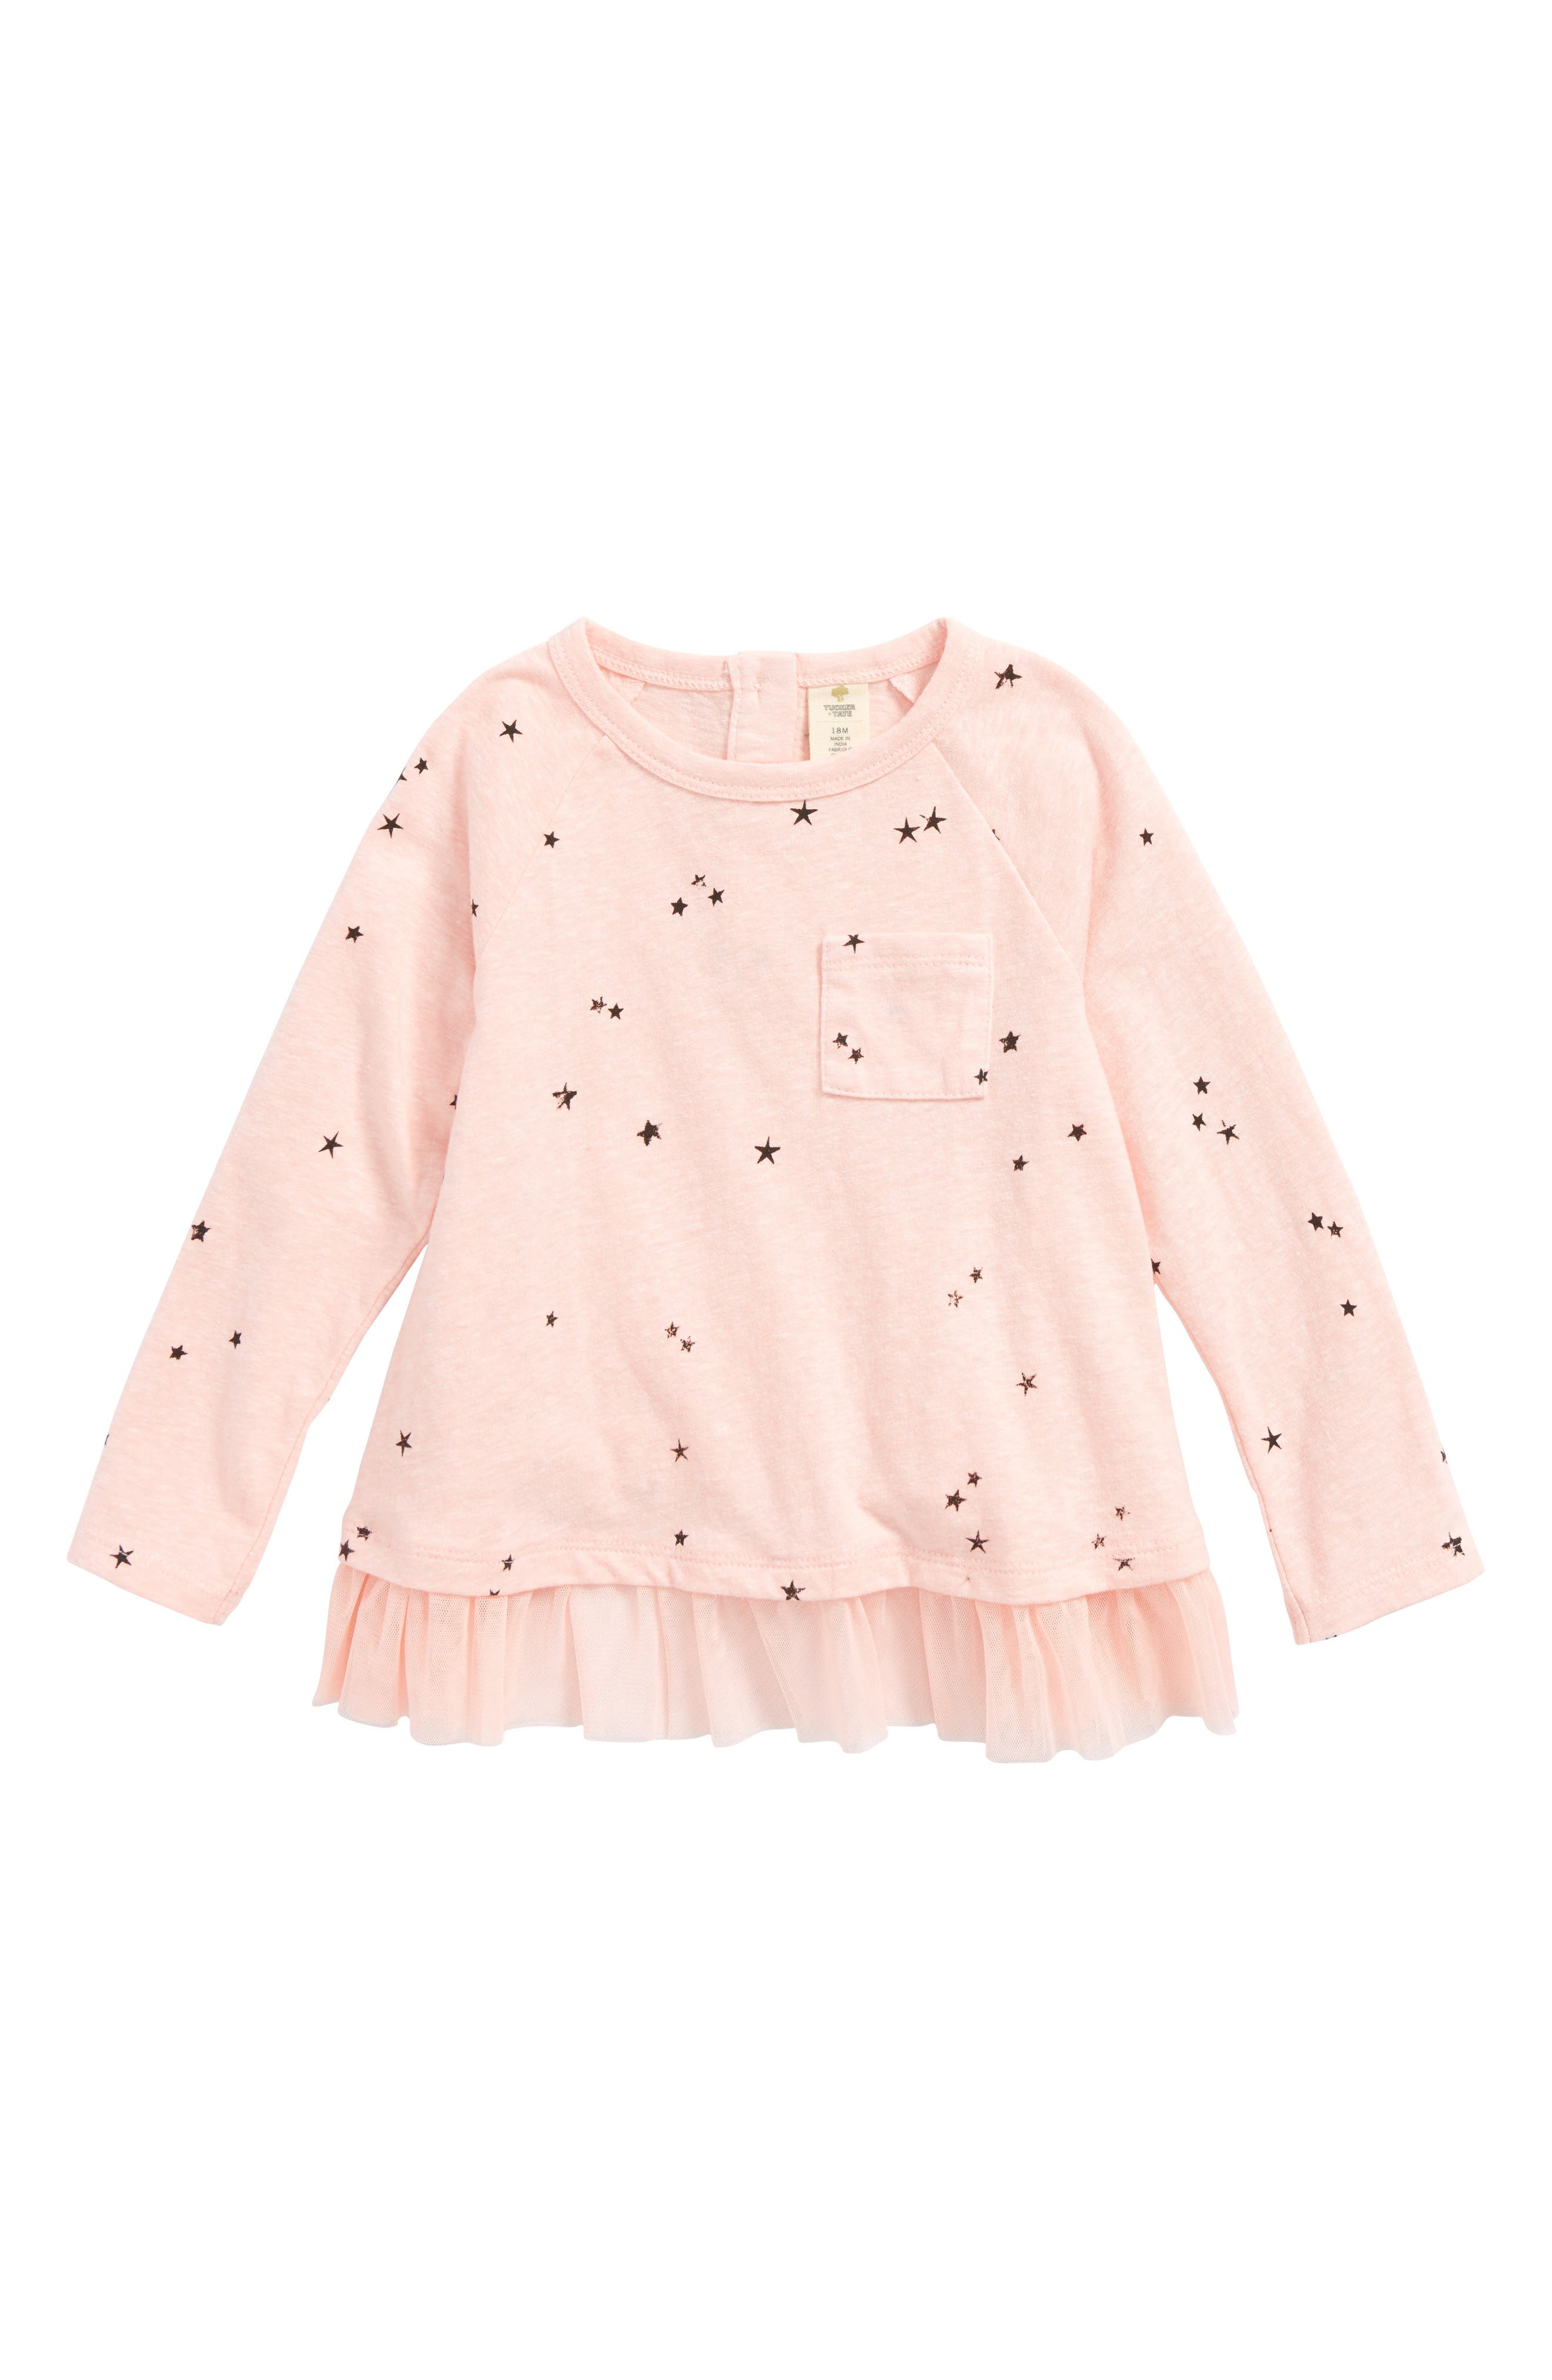 Mesh Hem Tee,                             Main thumbnail 1, color,                             Pink Cloud Scattered Stars